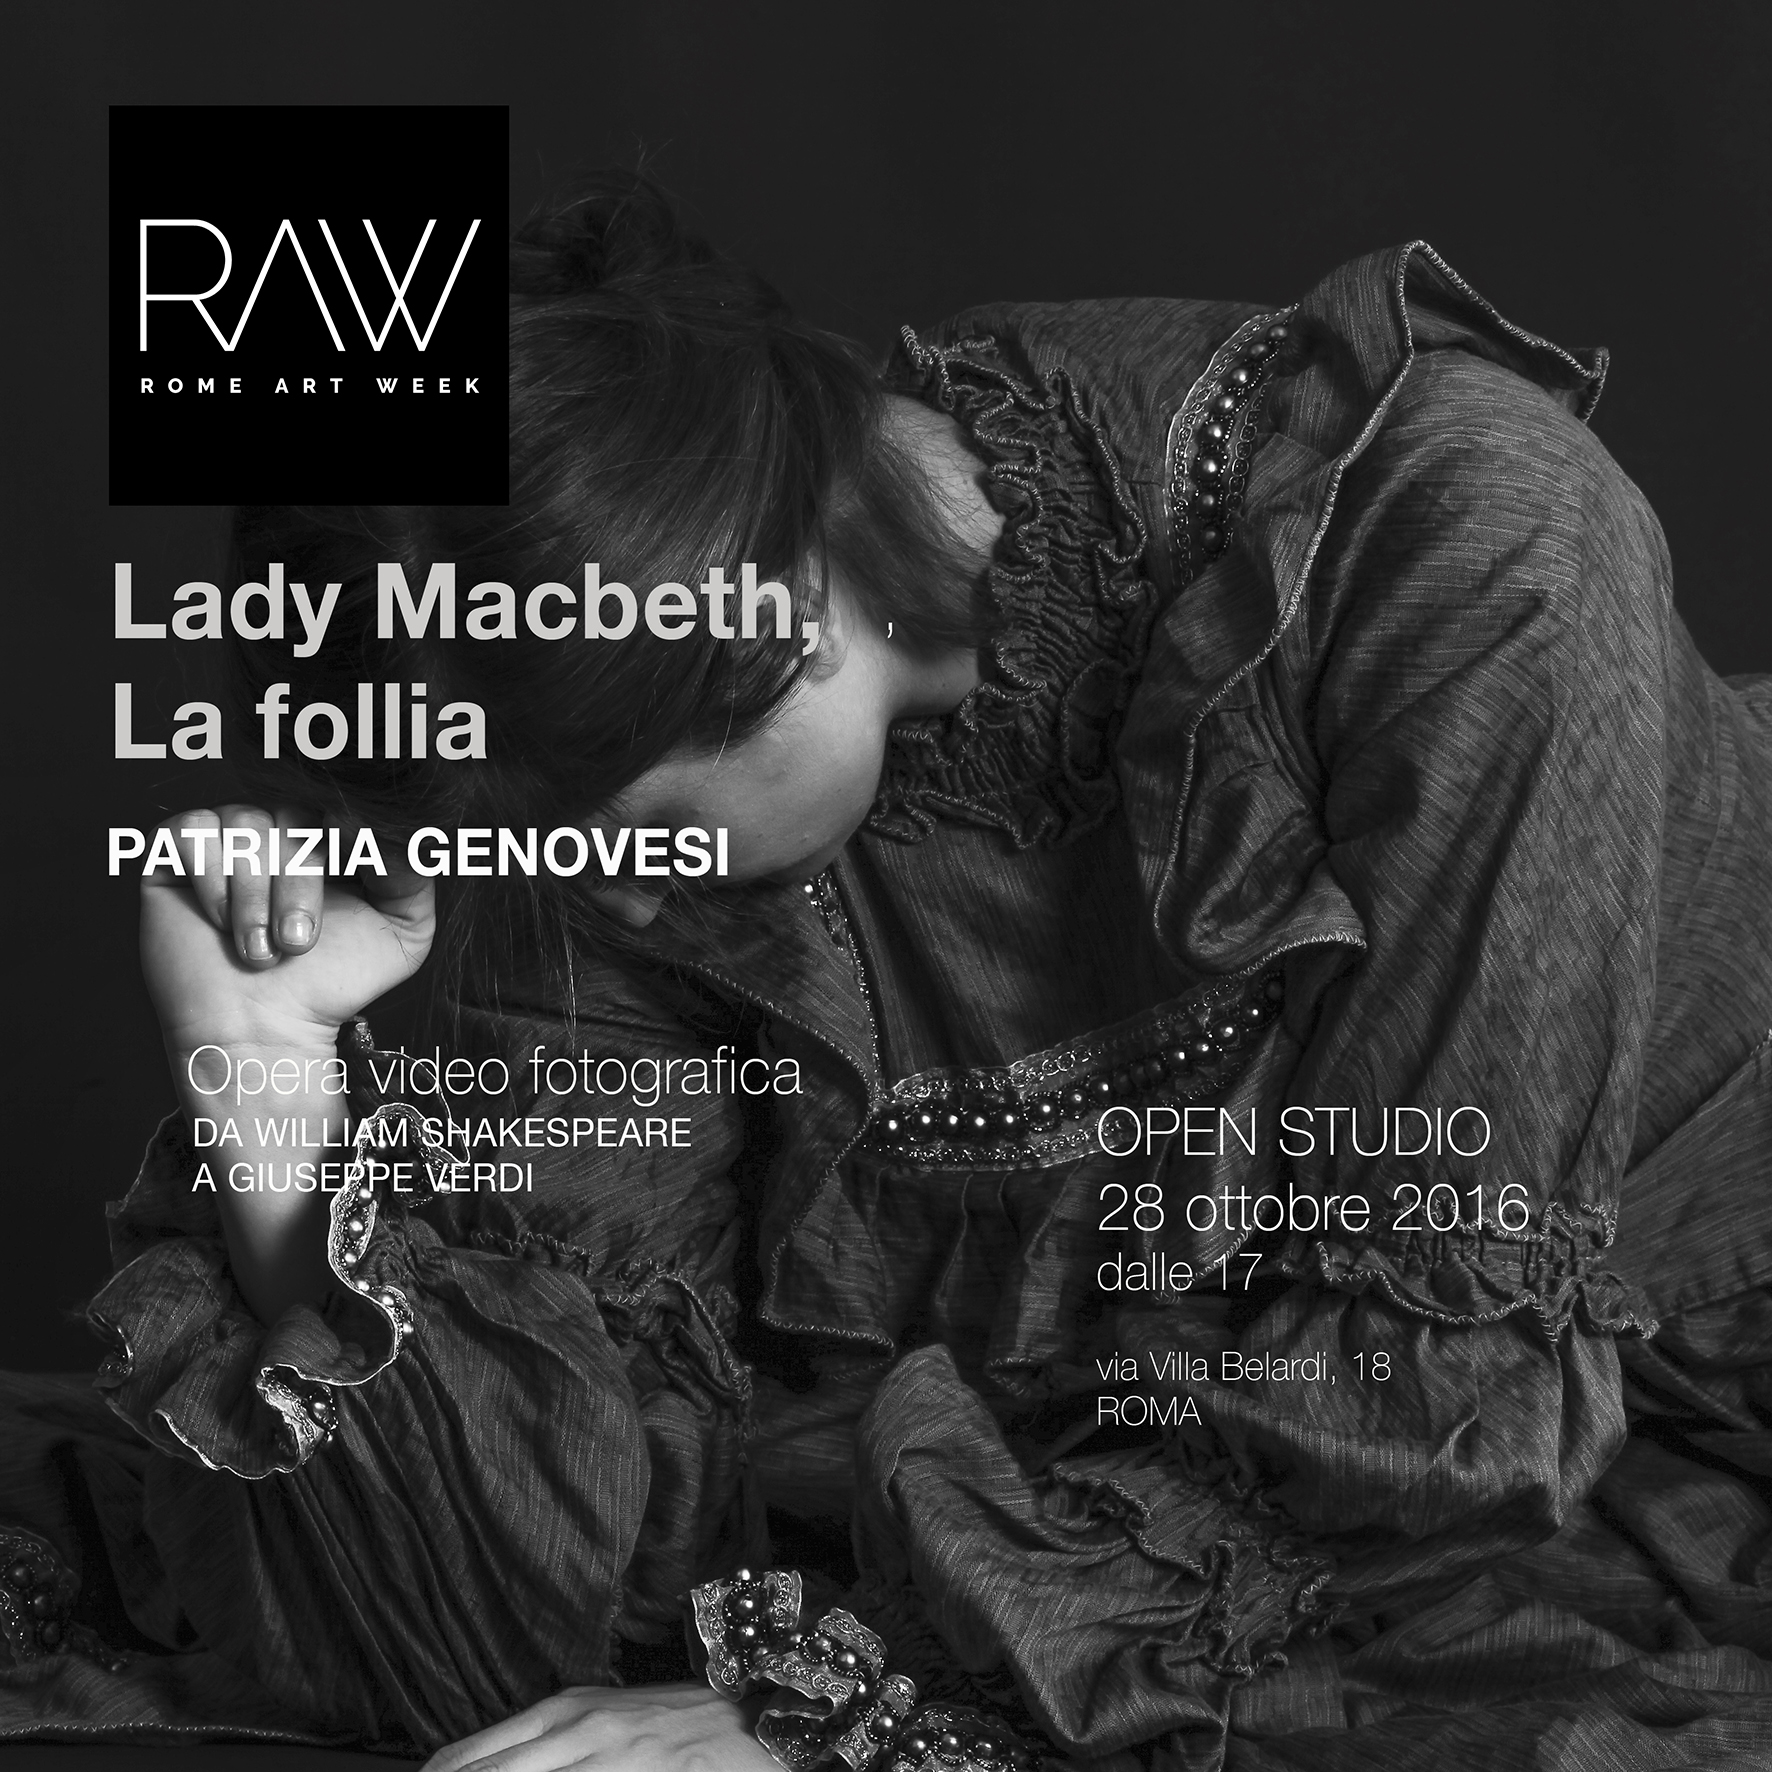 Rome Art Week - LADY MACBETH. Opera video-fotografica di PATRIZIA GENOVESI